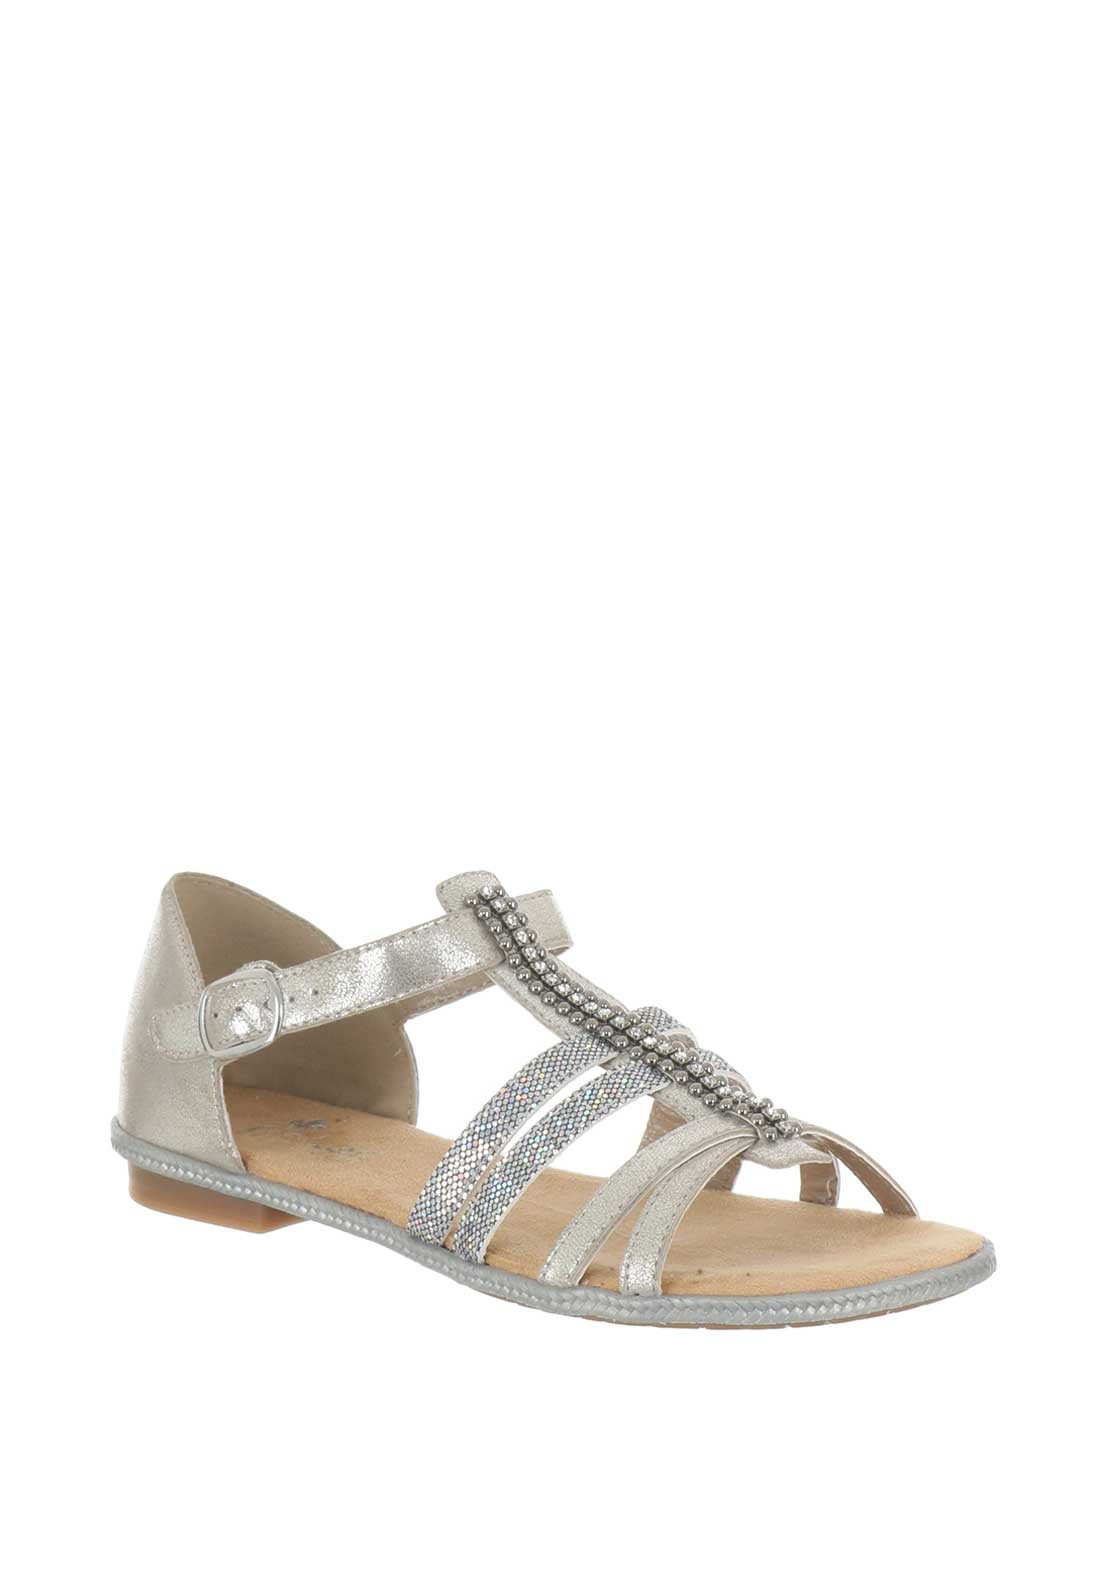 87f7e4bfbdac Rieker Womens Metallic Strappy Sandals